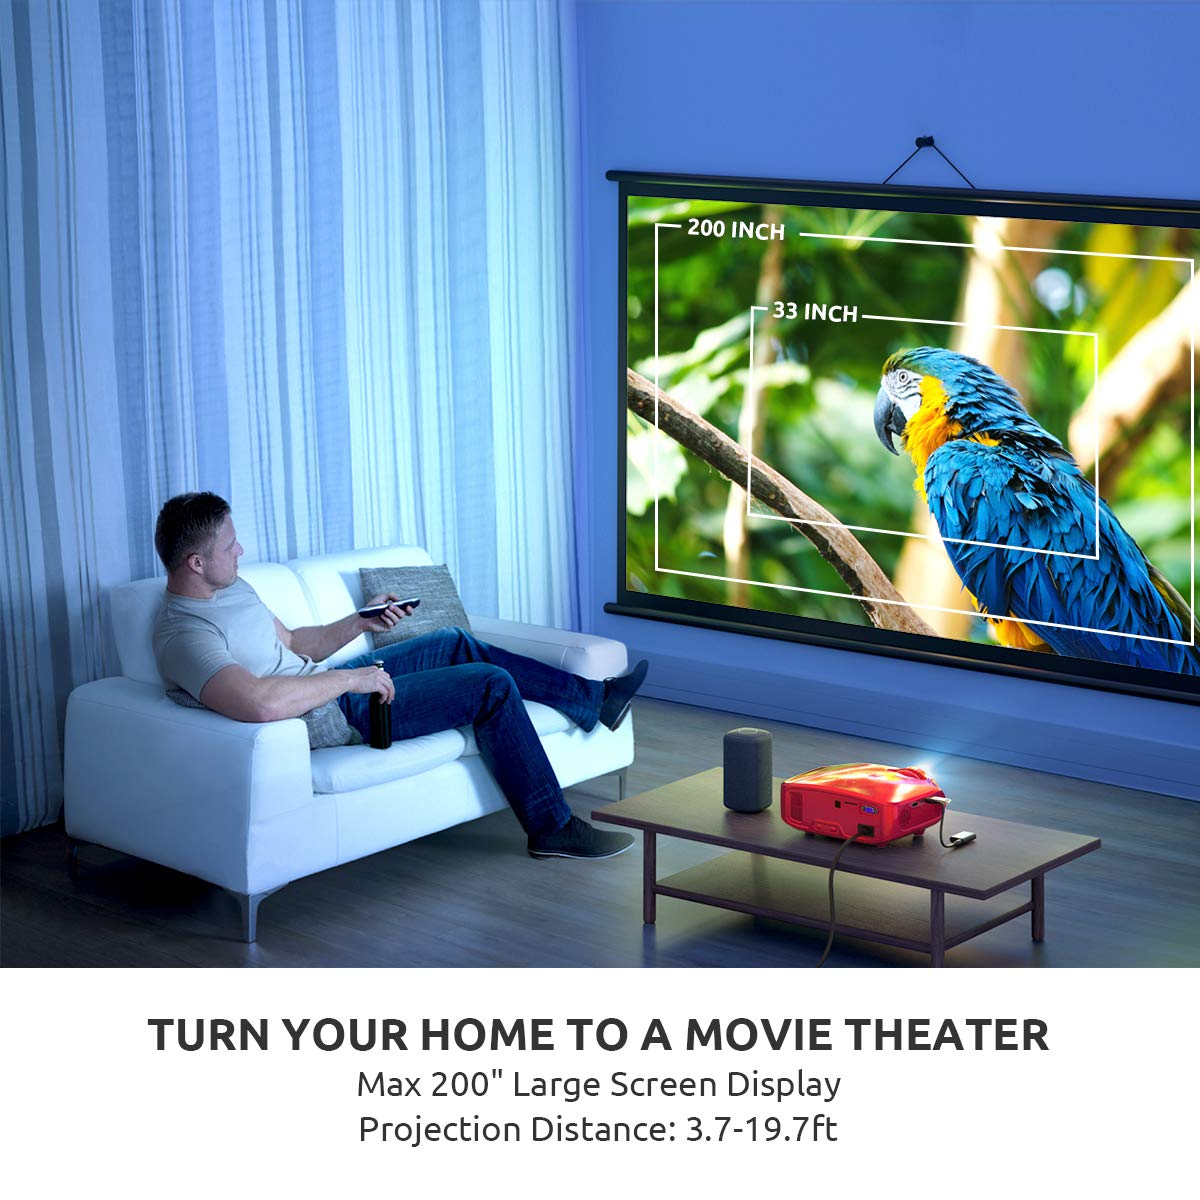 Projector, Crenova Upgraded Home Video Projector, Portable Mini Movie Projector with 3200 Lux, 200'' Display, Work with PC, Fire Stick, HDMI, PS4, TV Box, VGA, TF, AV, USB for Home Theater/Outdoor/Game by crenova (Image #4)